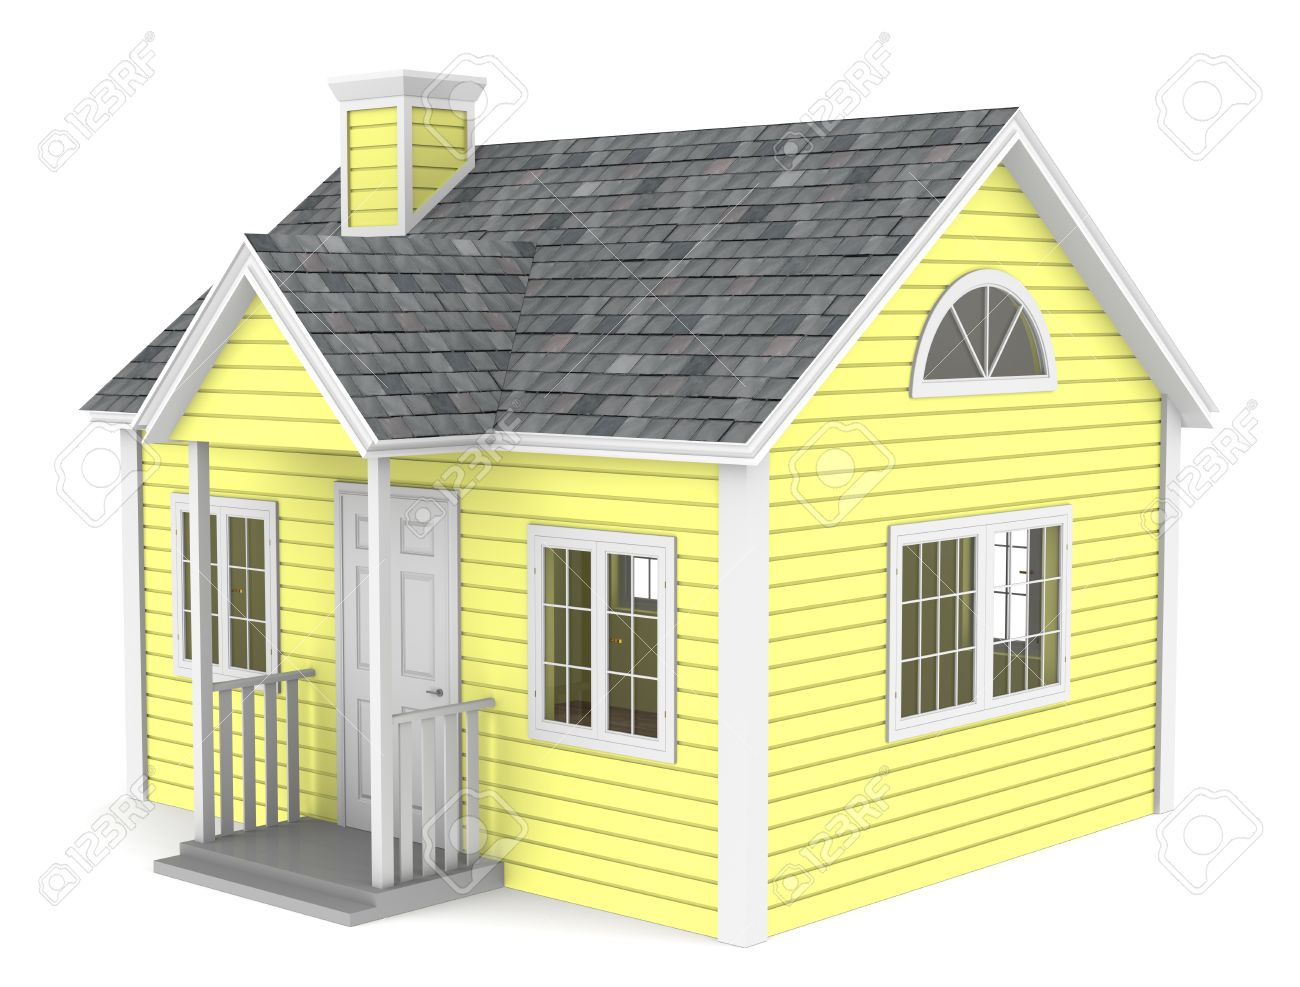 A simple House  Yellow Pastel Color  Stock Photo   10588727. A Simple House  Yellow Pastel Color  Stock Photo  Picture And